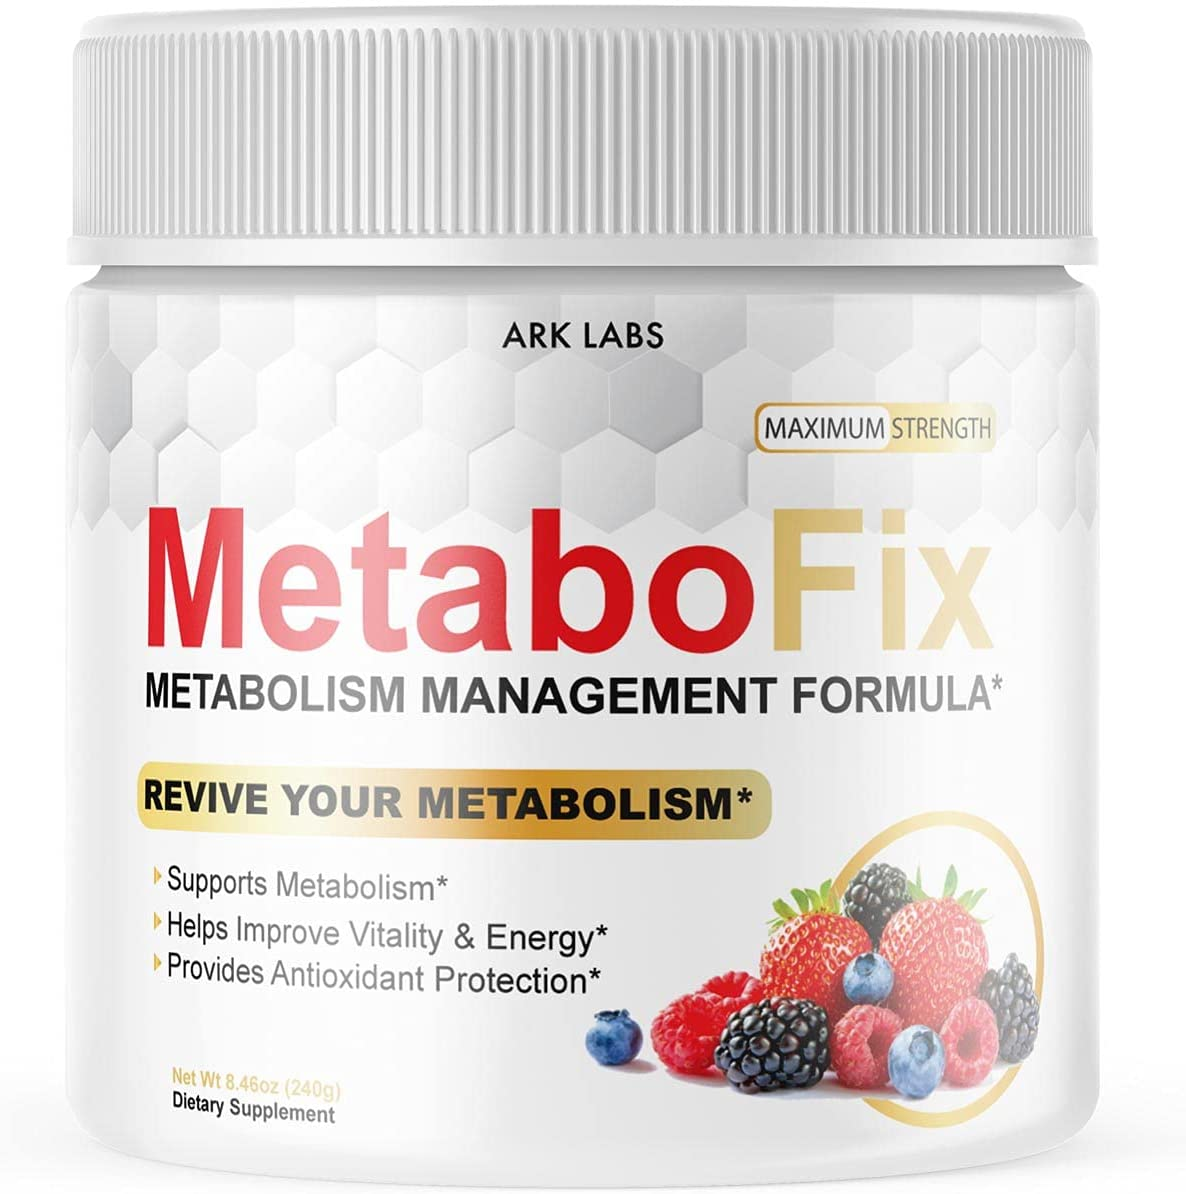 Metabofix Weight Loss Supplement Review